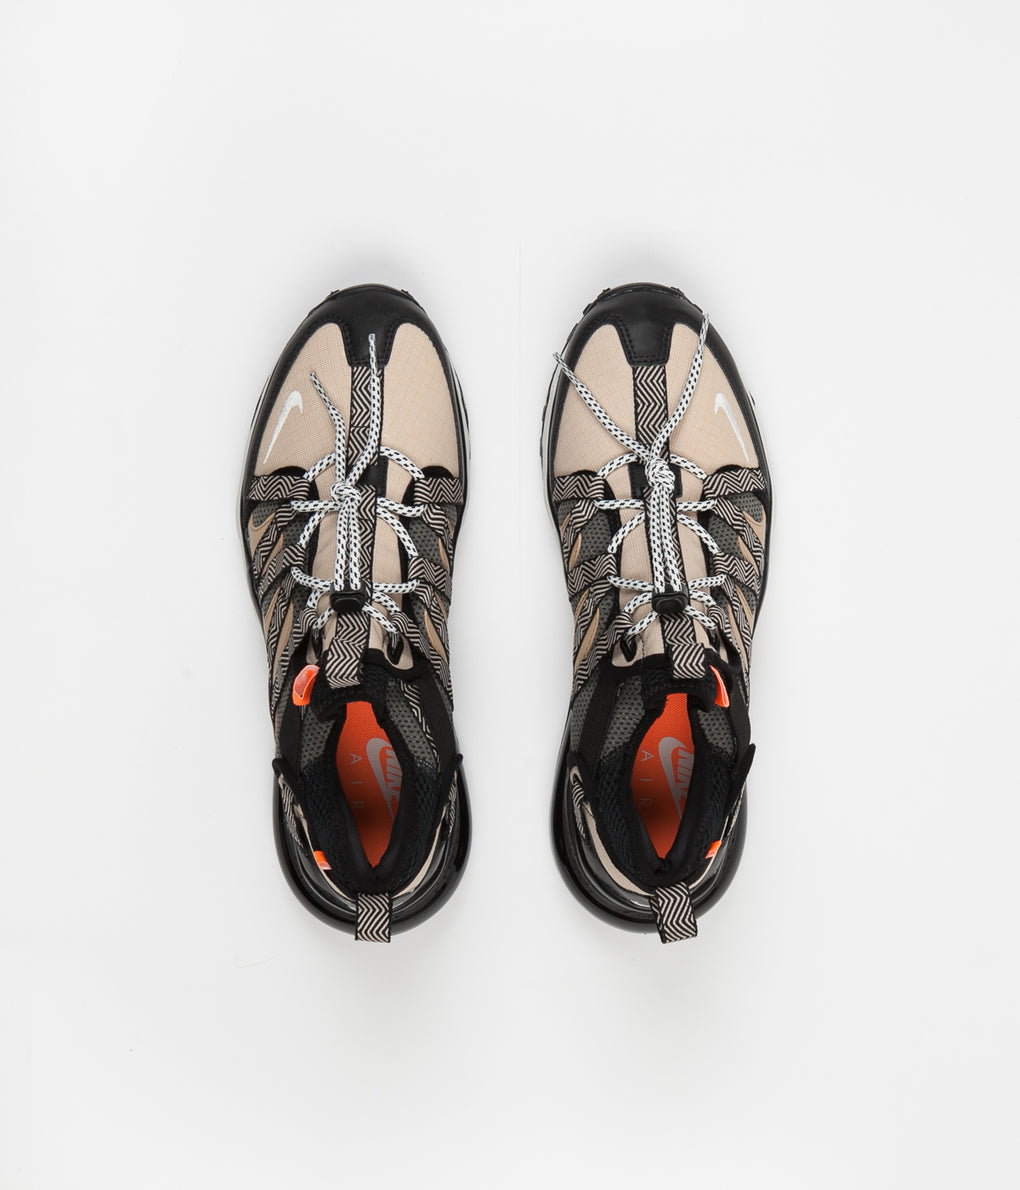 Nike Air Max 270 Bowfin Shoes - Black / Phantom - Desert - Cone